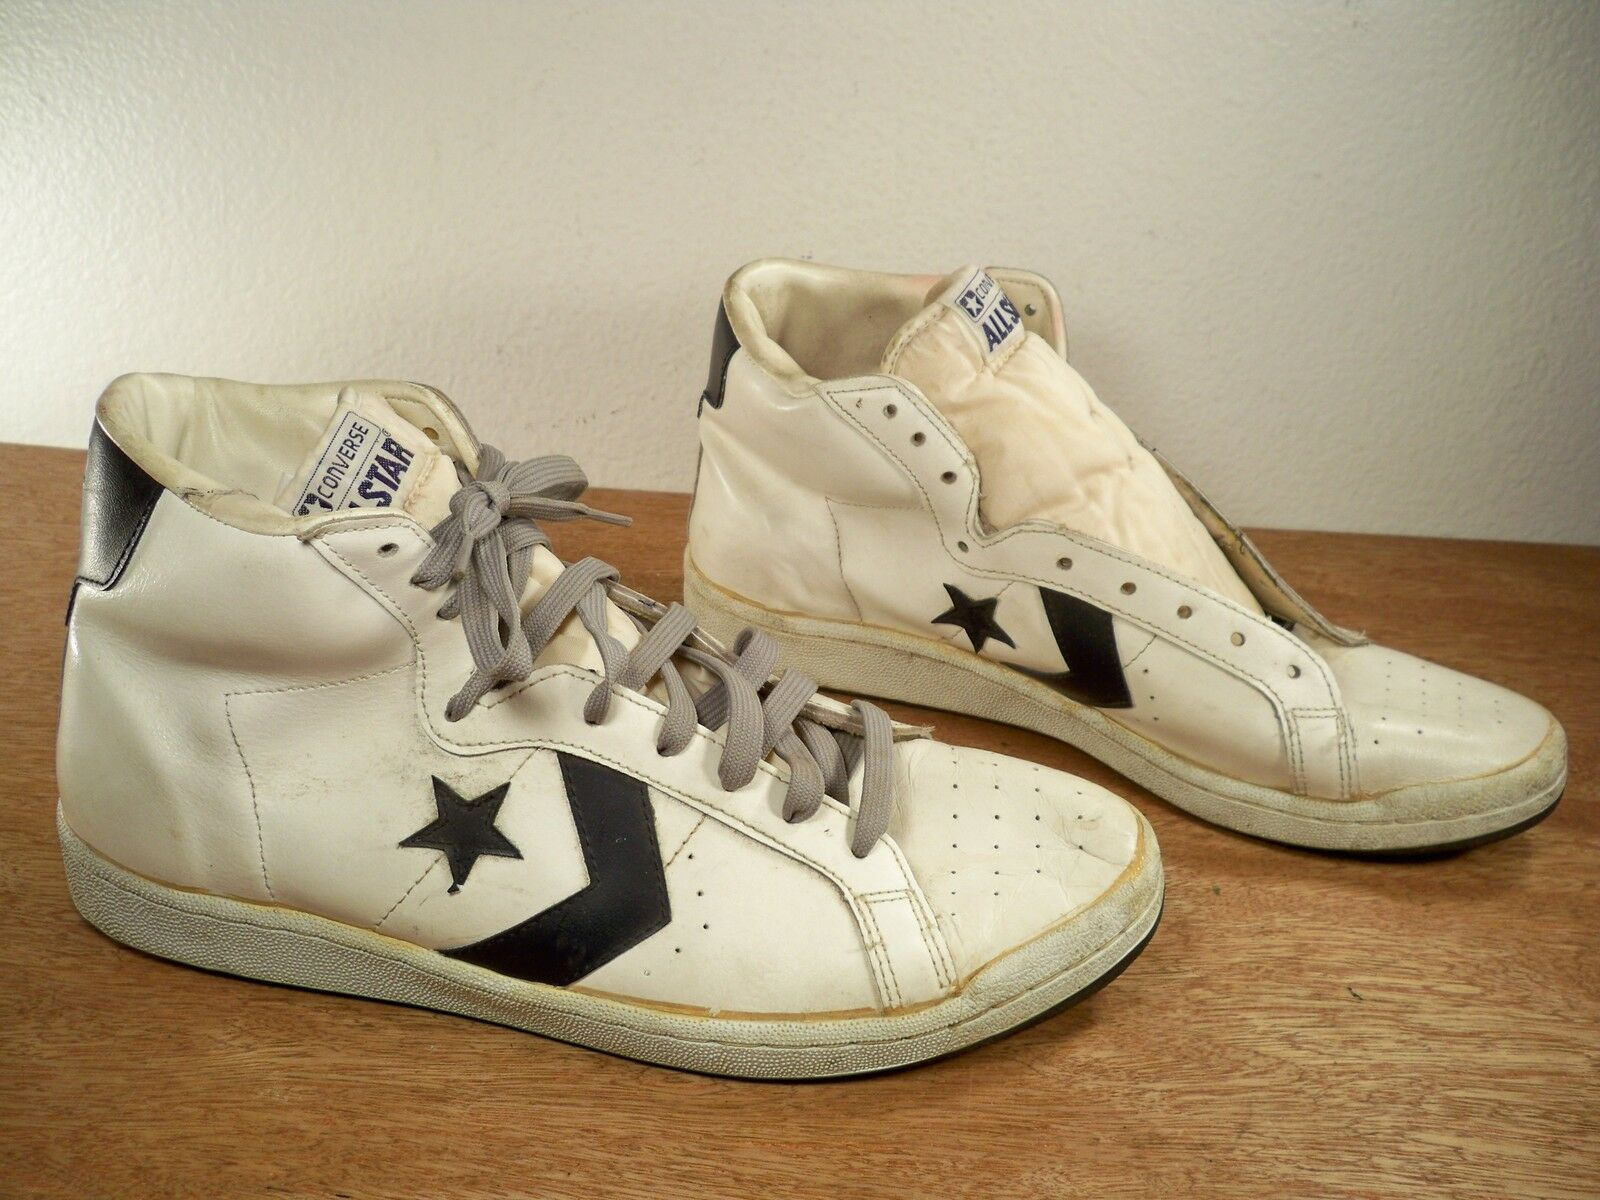 vintage converse all high top basketball leather